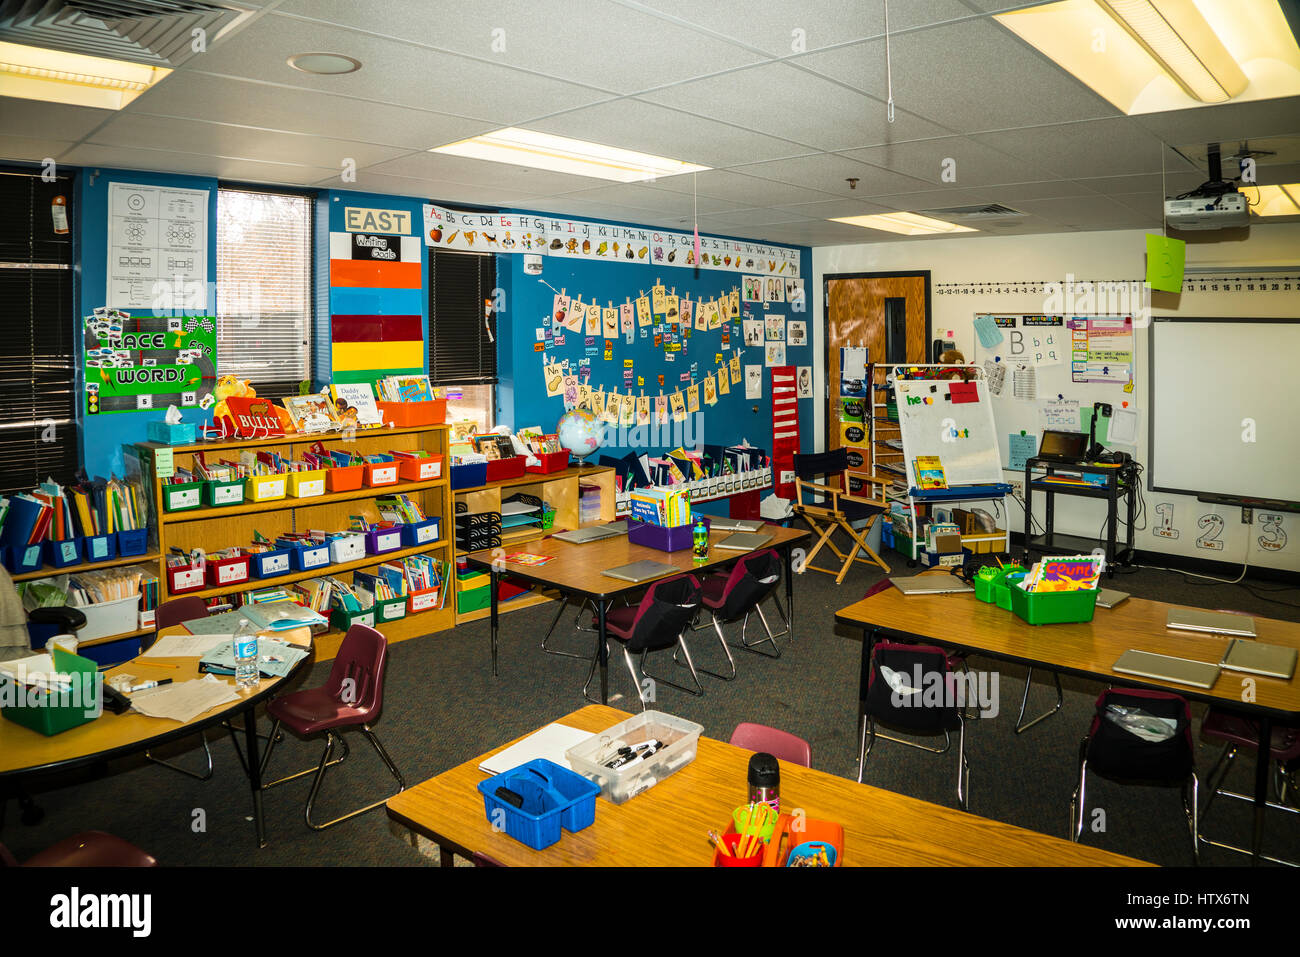 Classroom Design Aids Student Learning : Kindergarten classroom showing teaching aids and alphabet